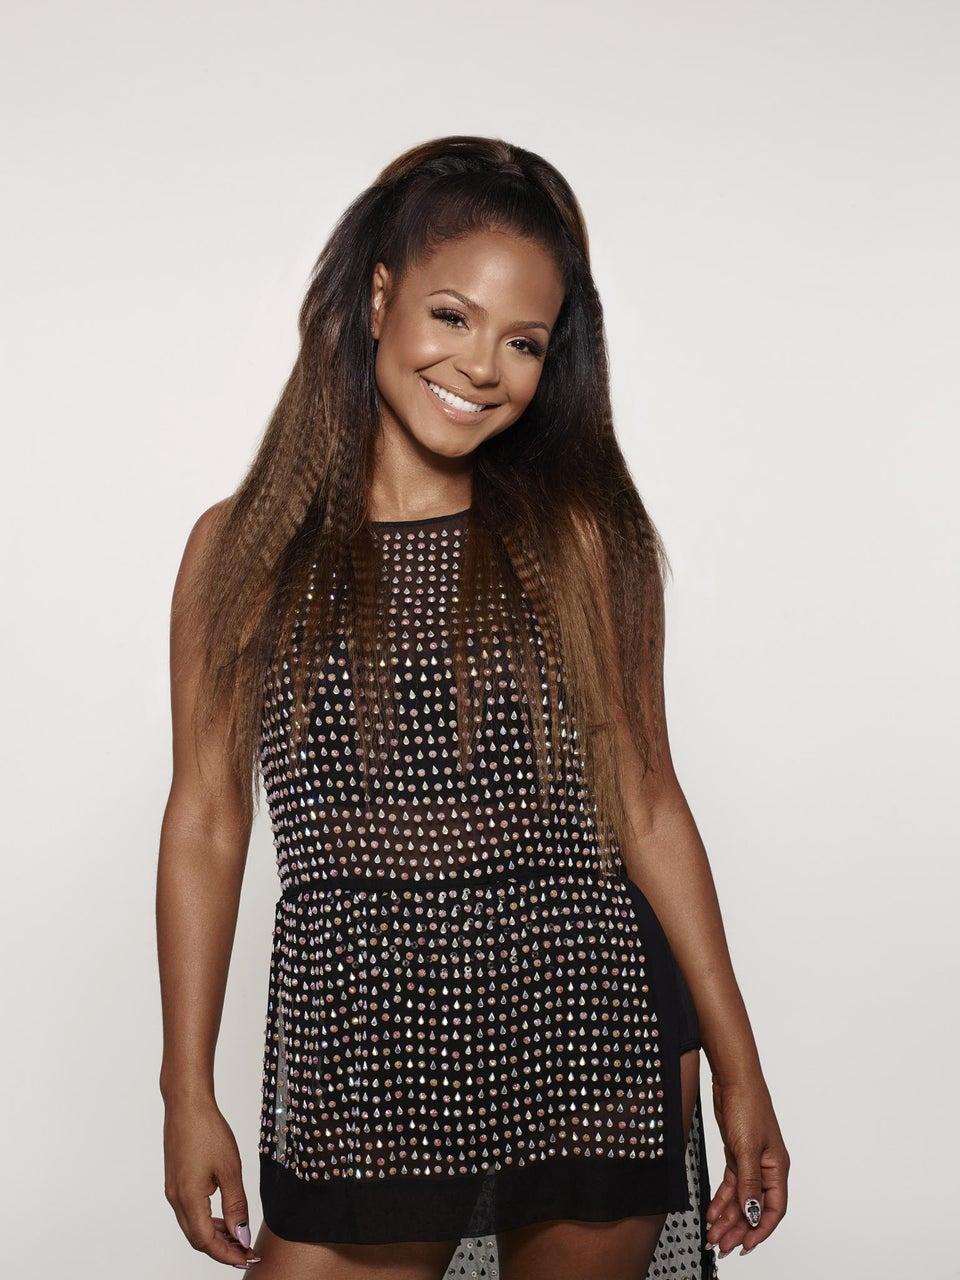 Christina Milian Shares What She Learned From Love's Ups and Downs